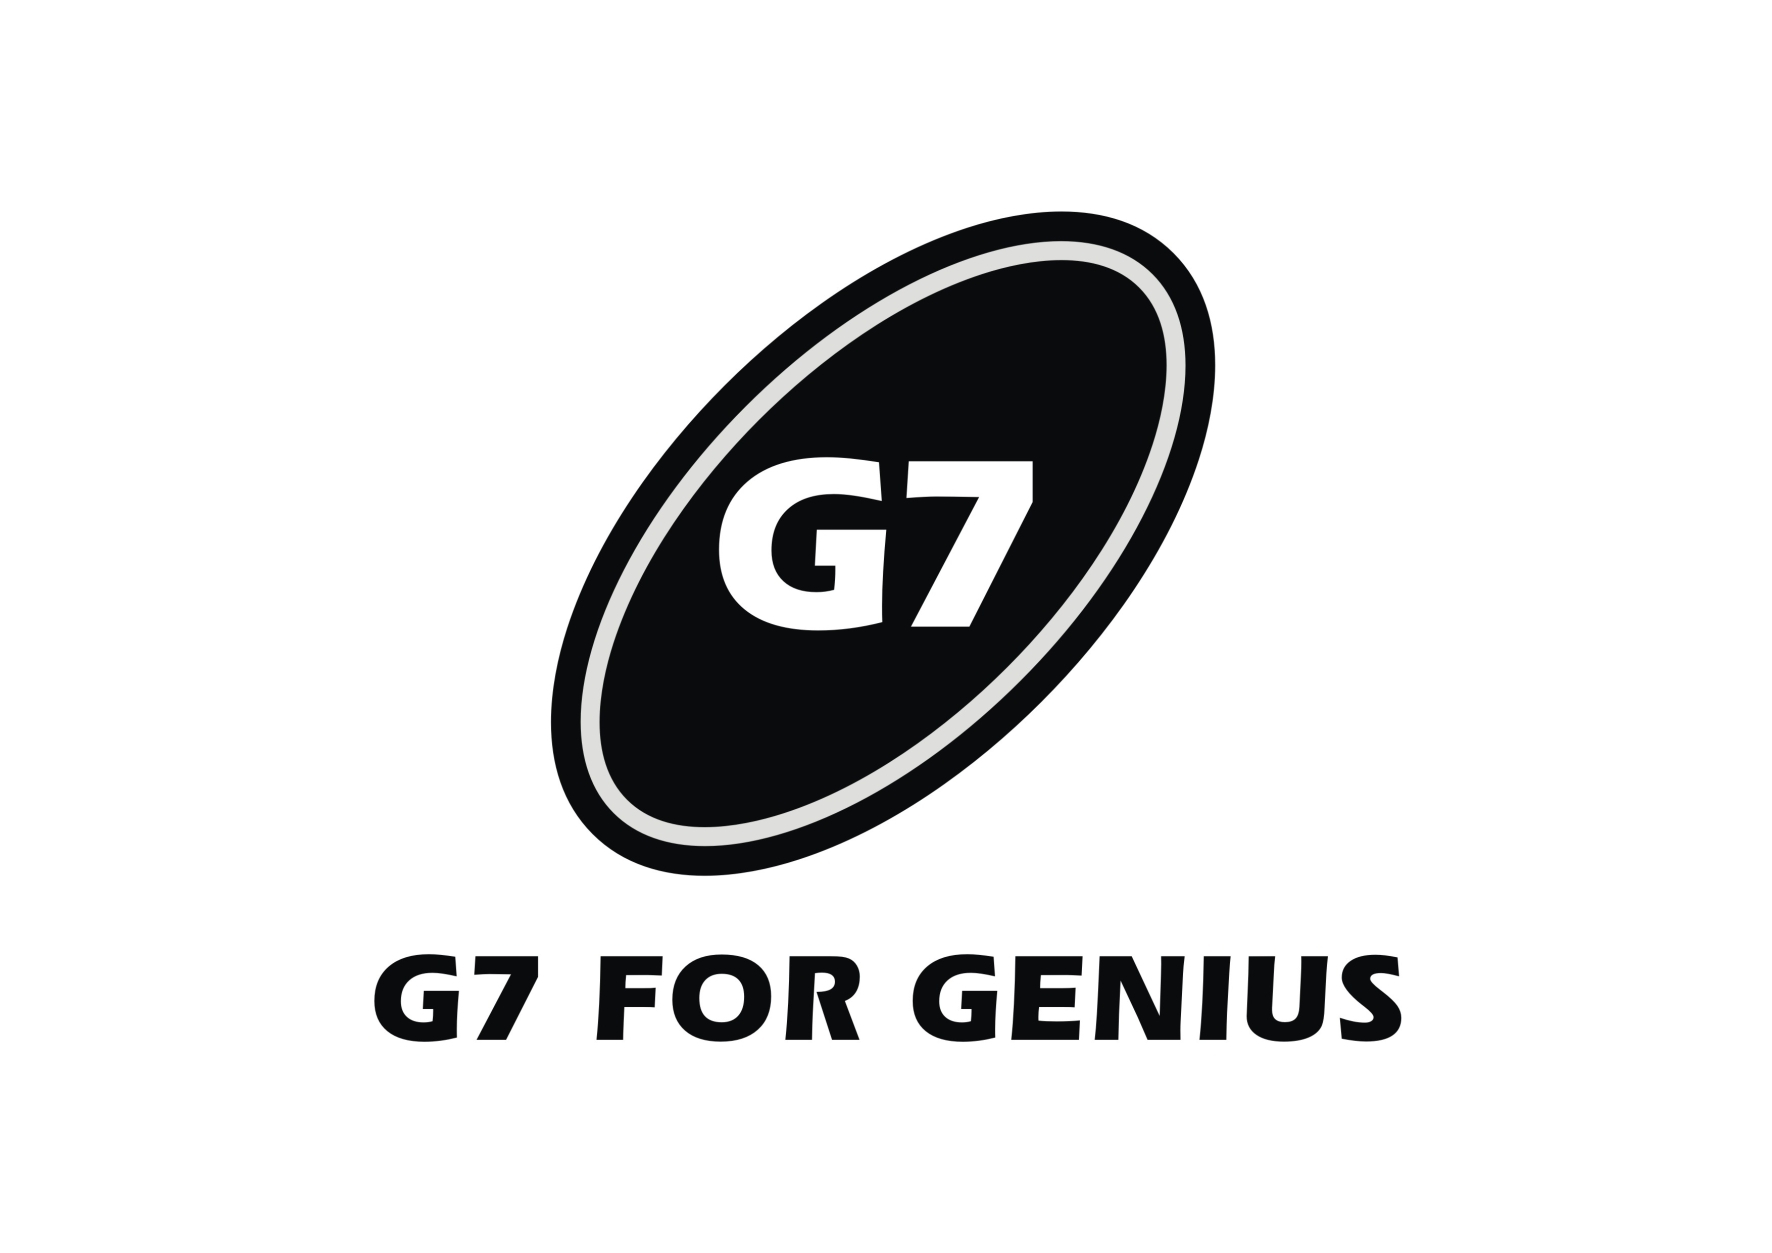 G7 System Certification from Idealliance awarded to EFI